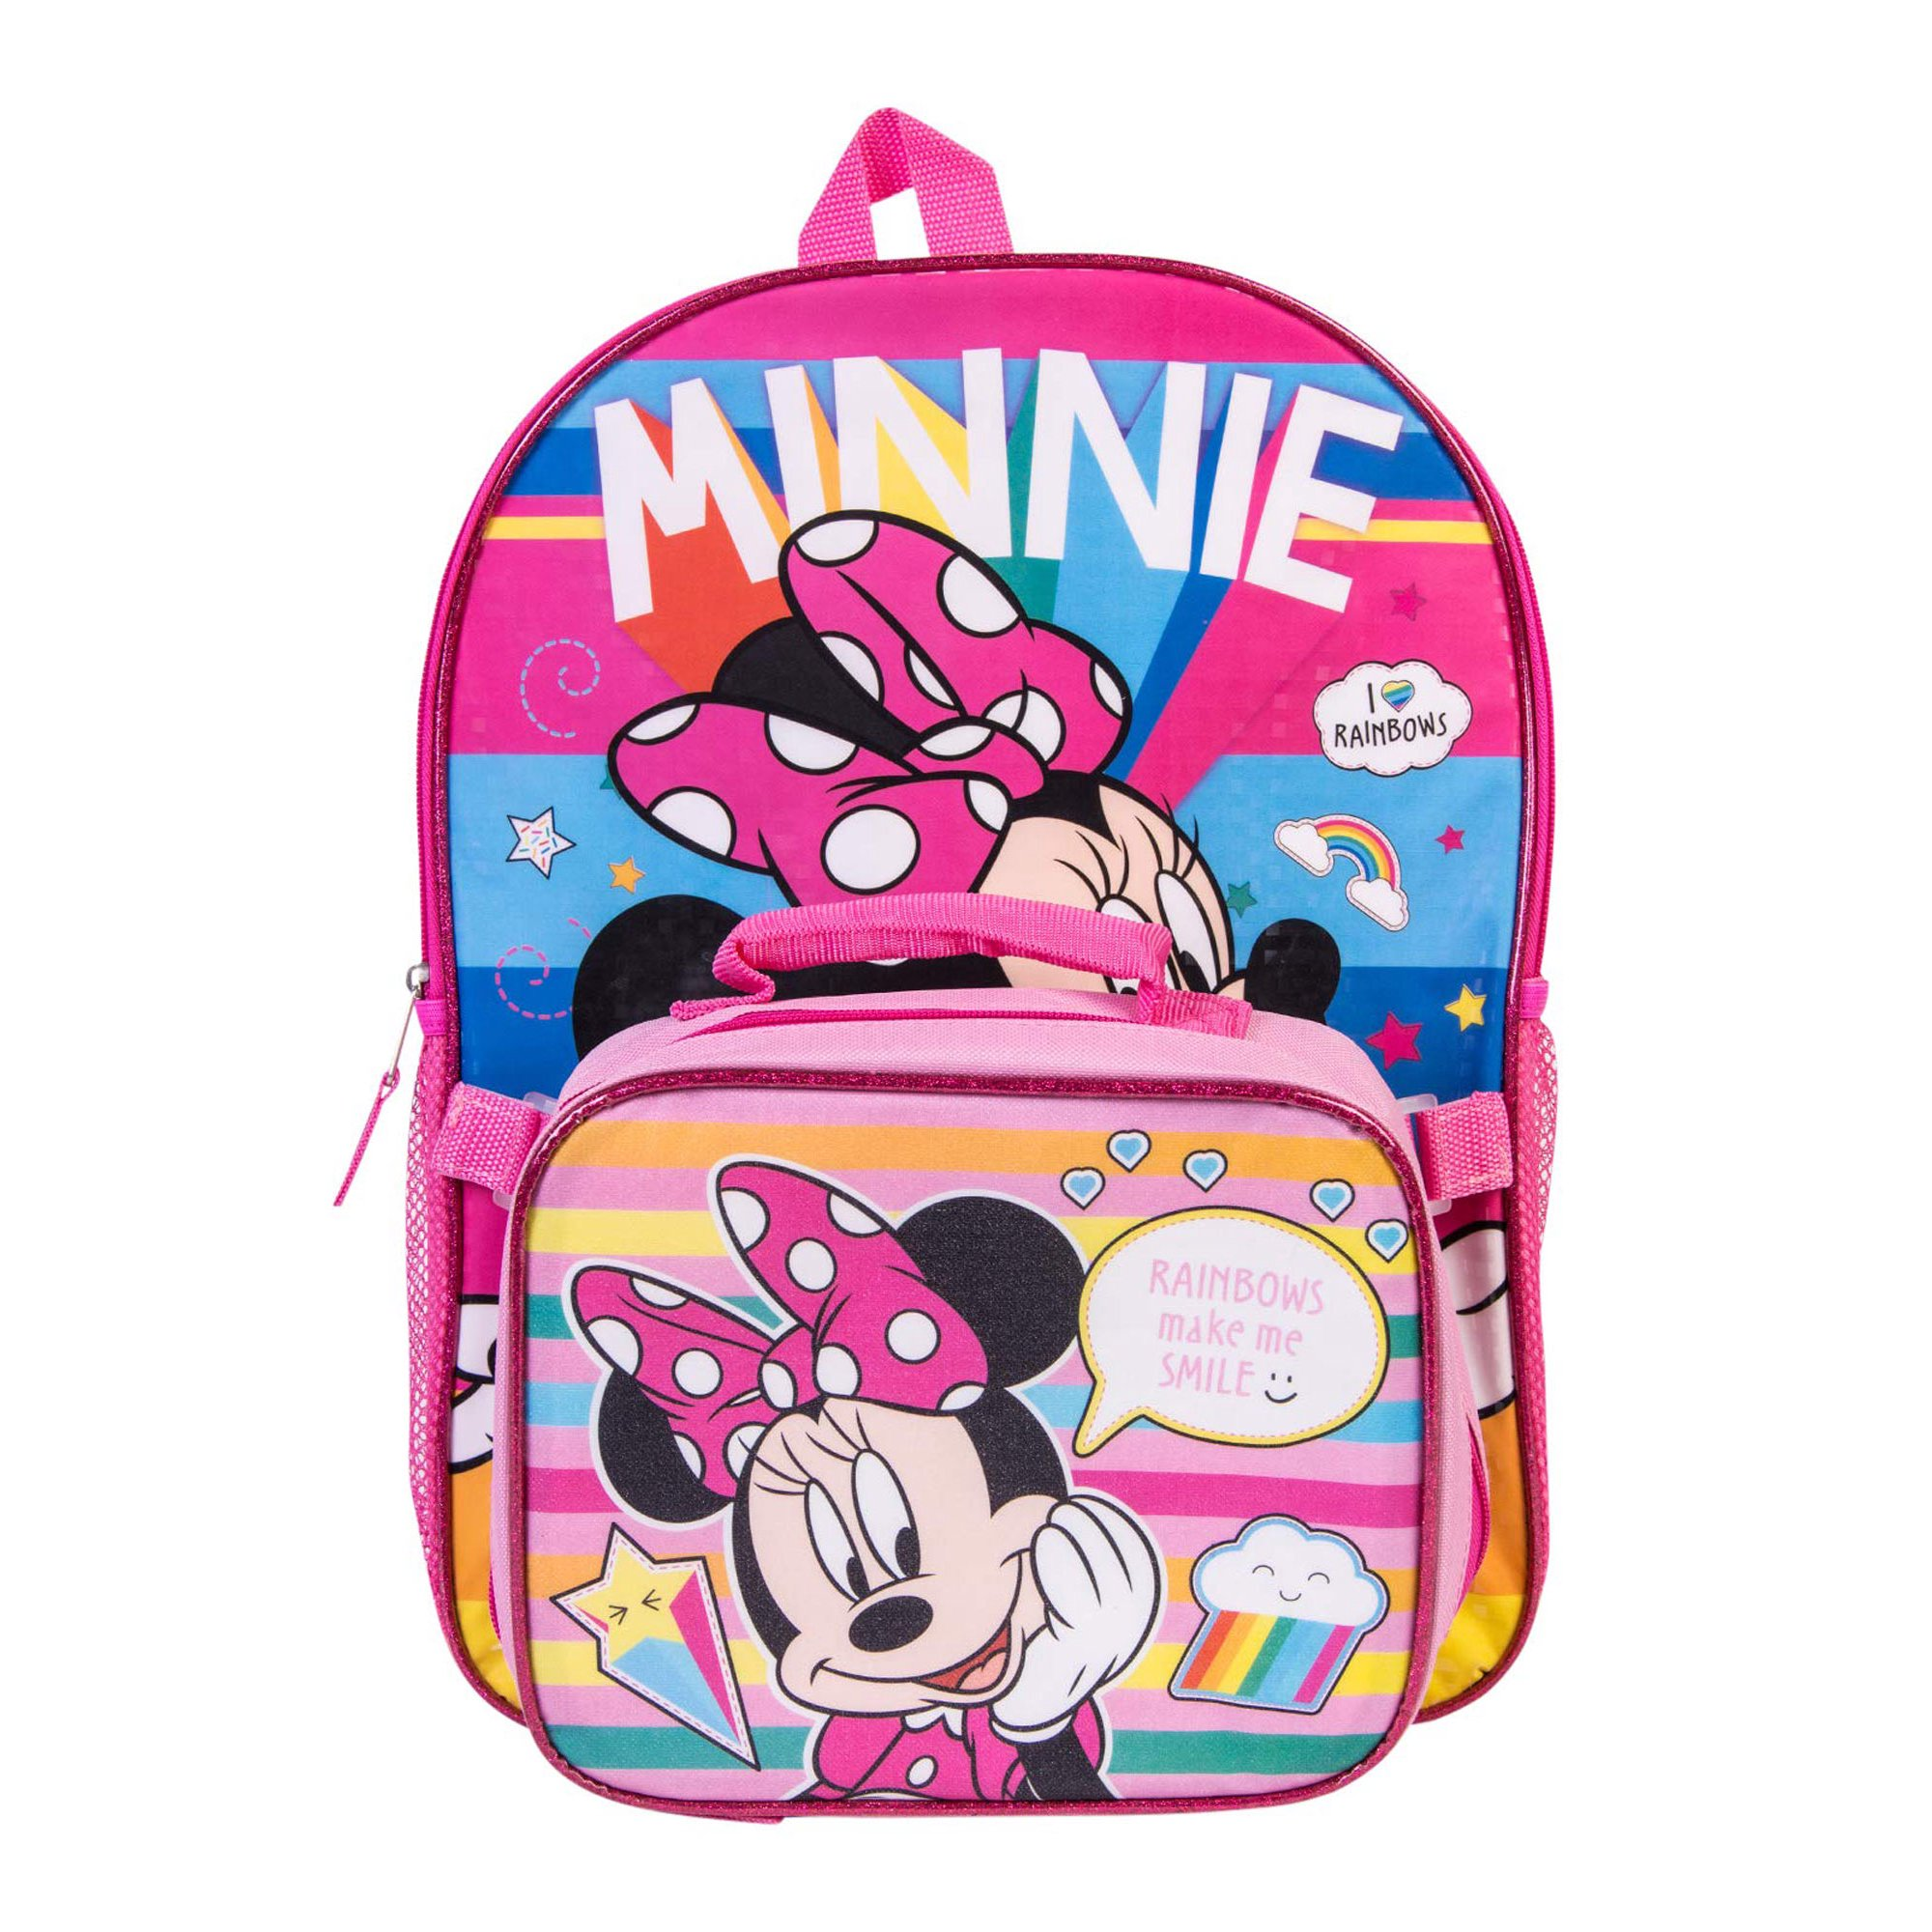 52ddbda75932 Girls Minnie Mouse Rainbows Backpack 16